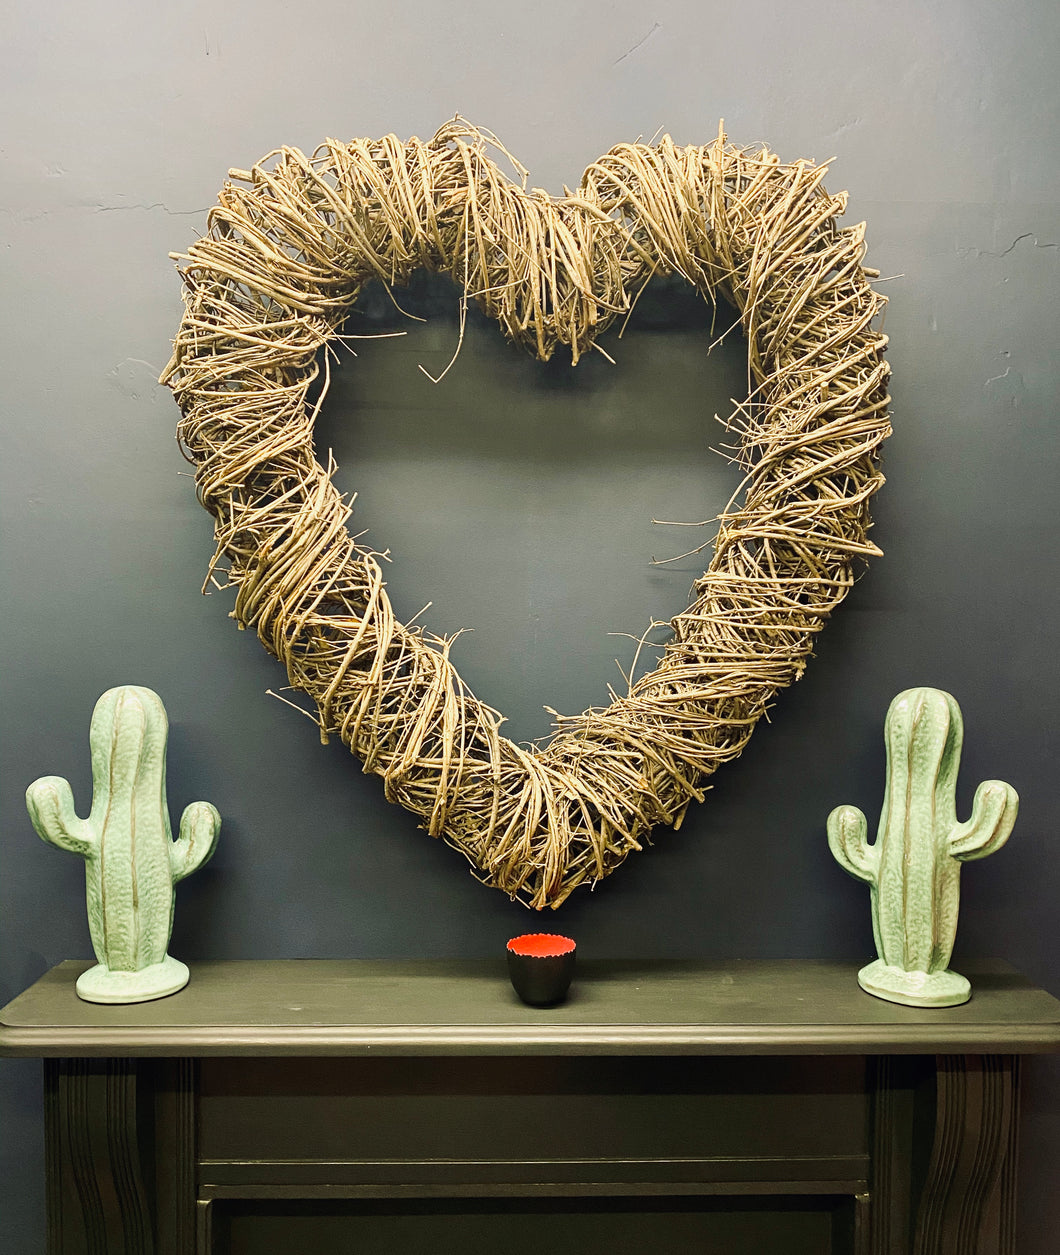 Larger Wicker Heart